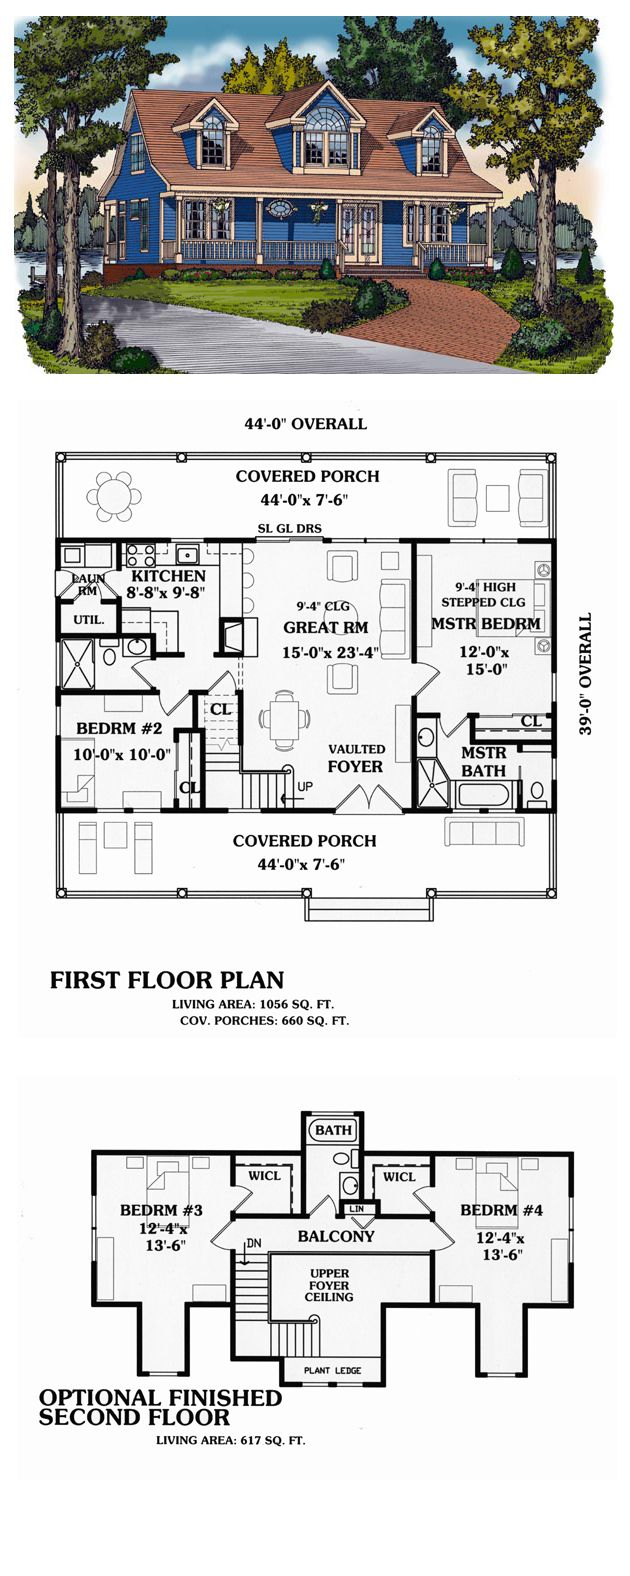 13 best sim house images on pinterest house design house ideas cool house plans offers a unique variety of professionally designed home plans with floor plans by accredited home designers styles include country house